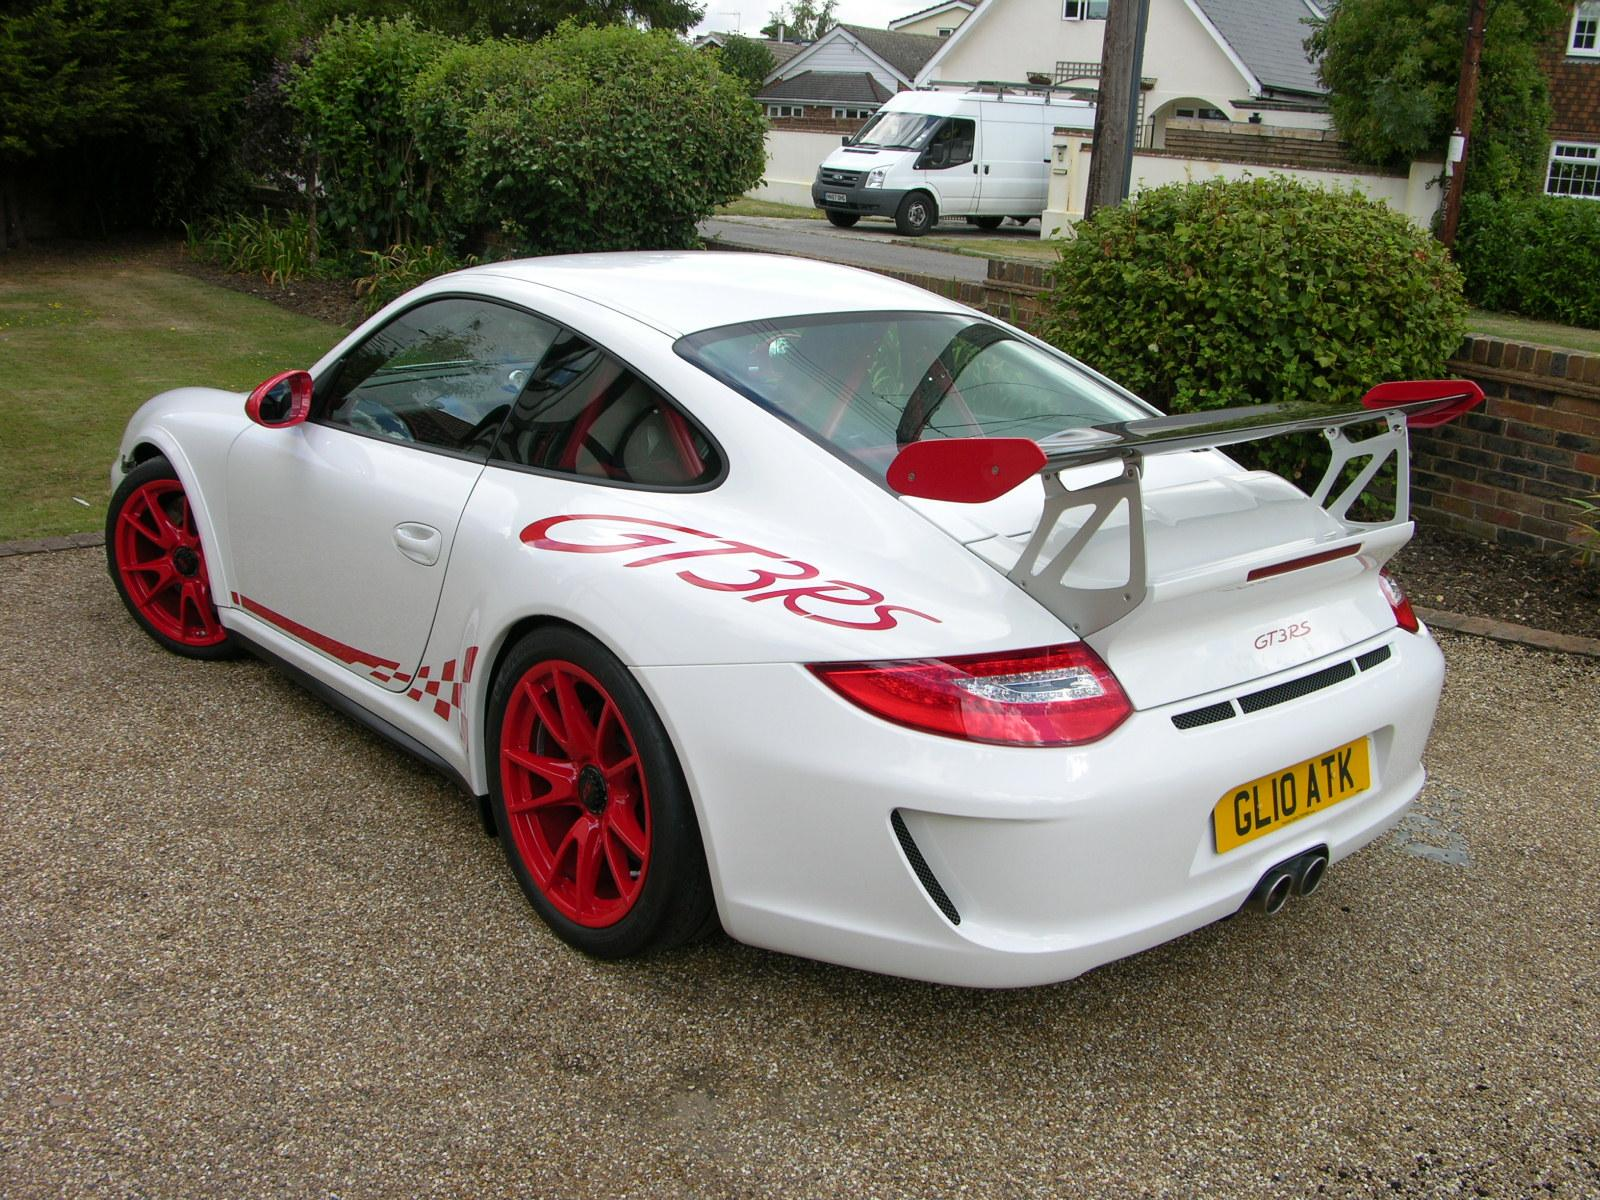 2010 Porsche 997 GT3 RS (post-facelift) rear.